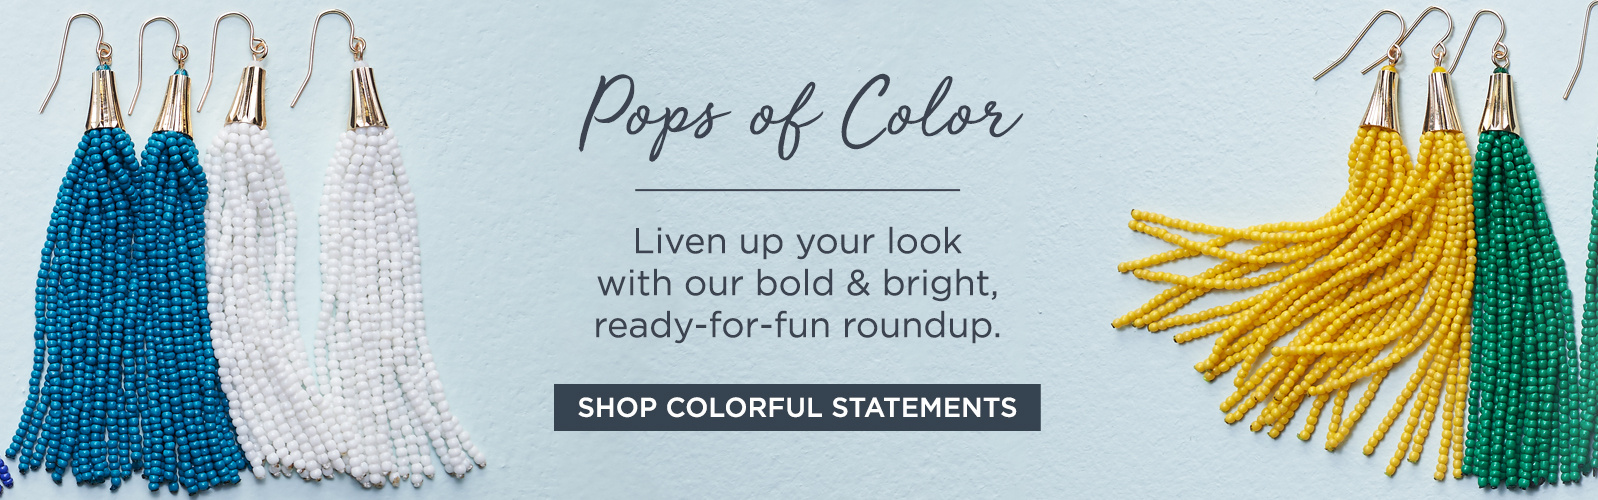 Pops of Color: Liven up your look with our bold & bright, ready-for-fun roundup.